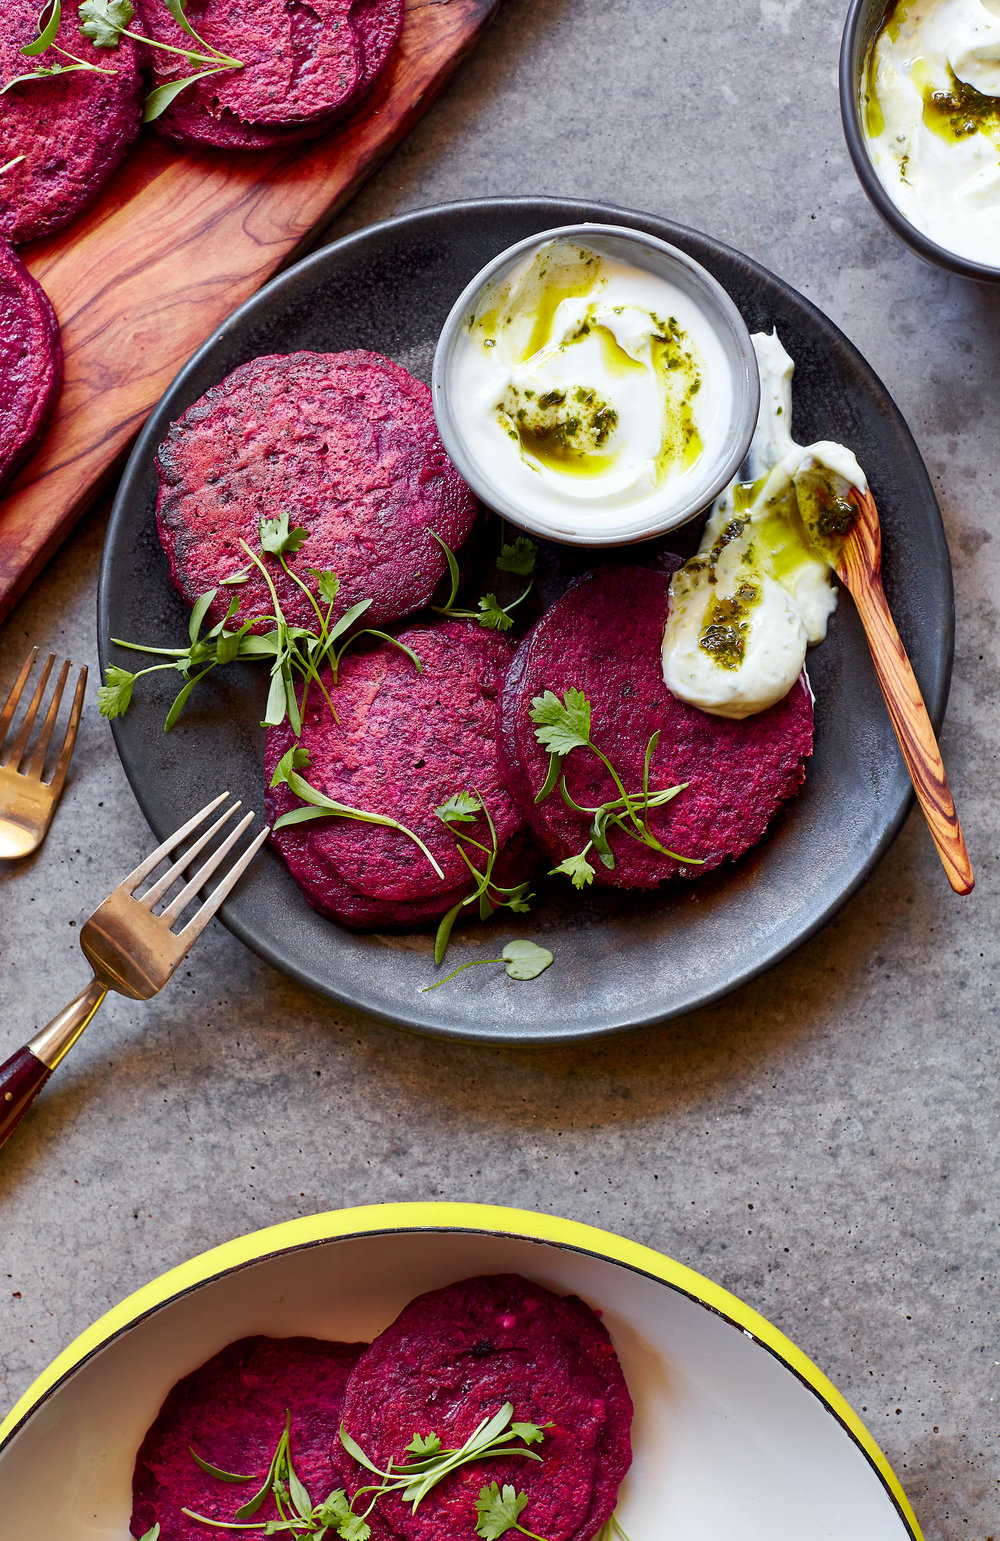 ROSEMARY BEET FRITTERS